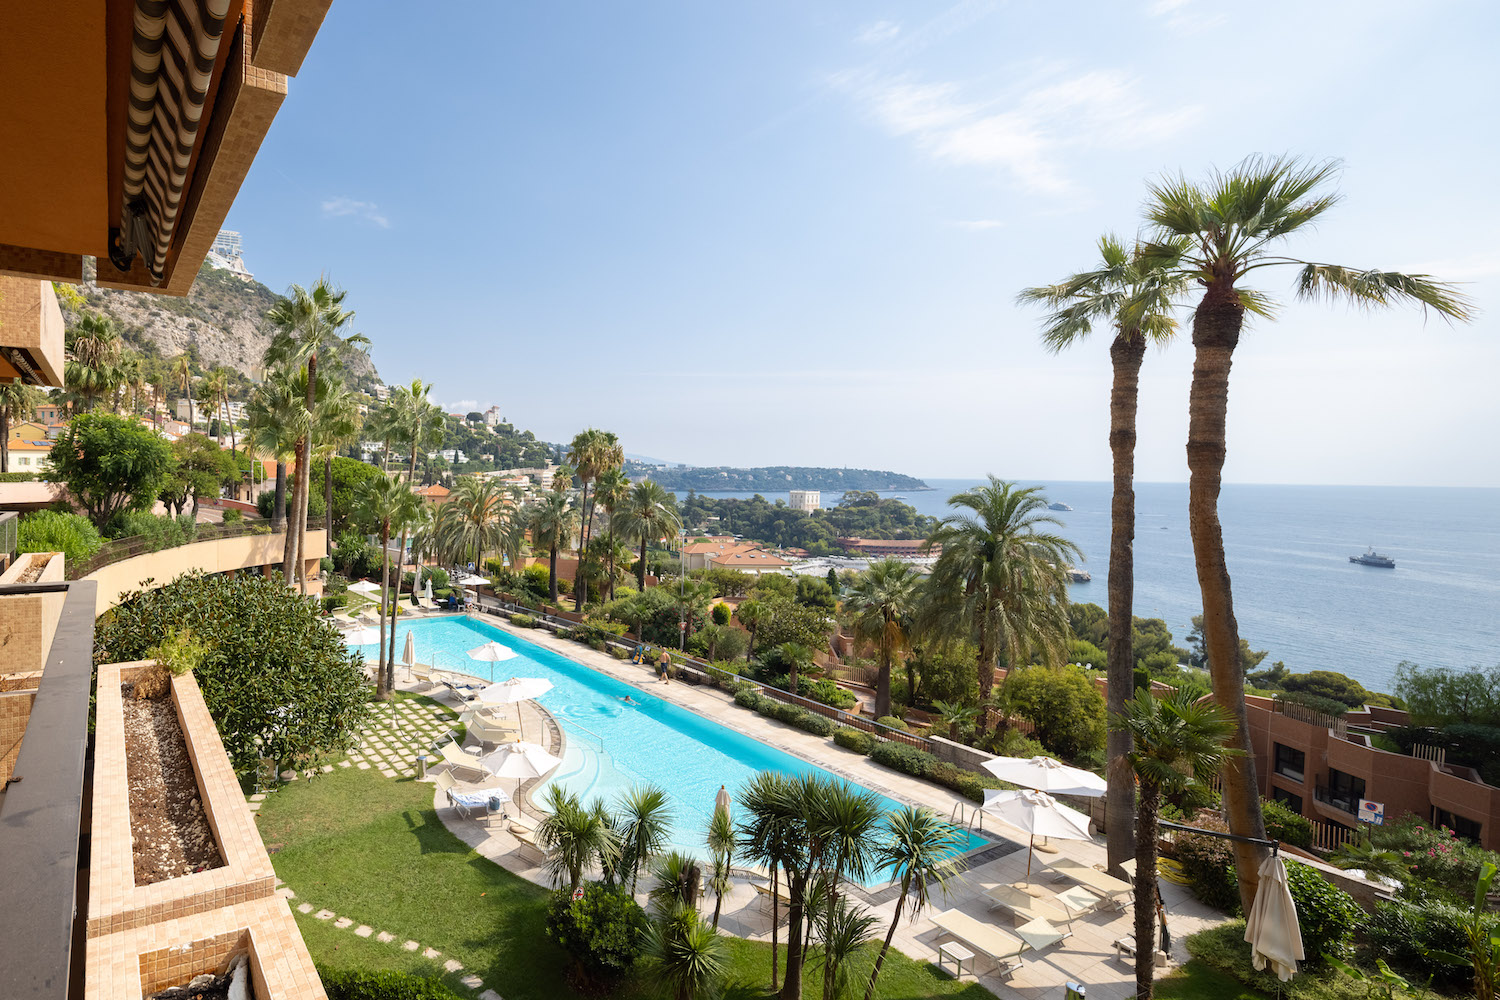 apartment-with-pool-and-sea-view-monaco